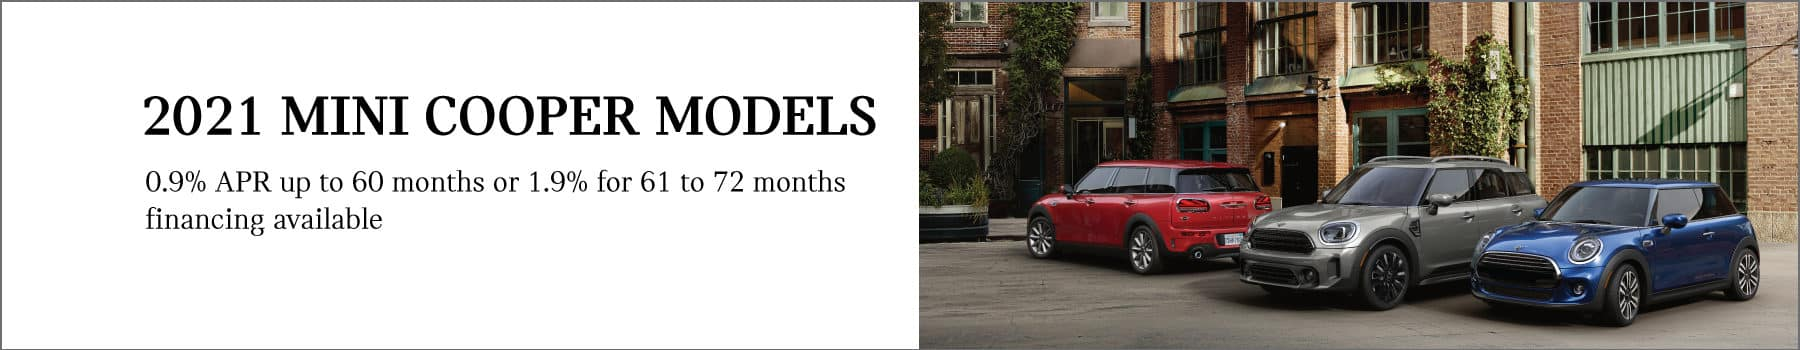 2021 MINI Cooper Models. 0.9% APR up to 60 months or 1.9% for 61 to 72 months financing available. Picture shows three 2021 MINI vehicles parked next to each other in an urban area.